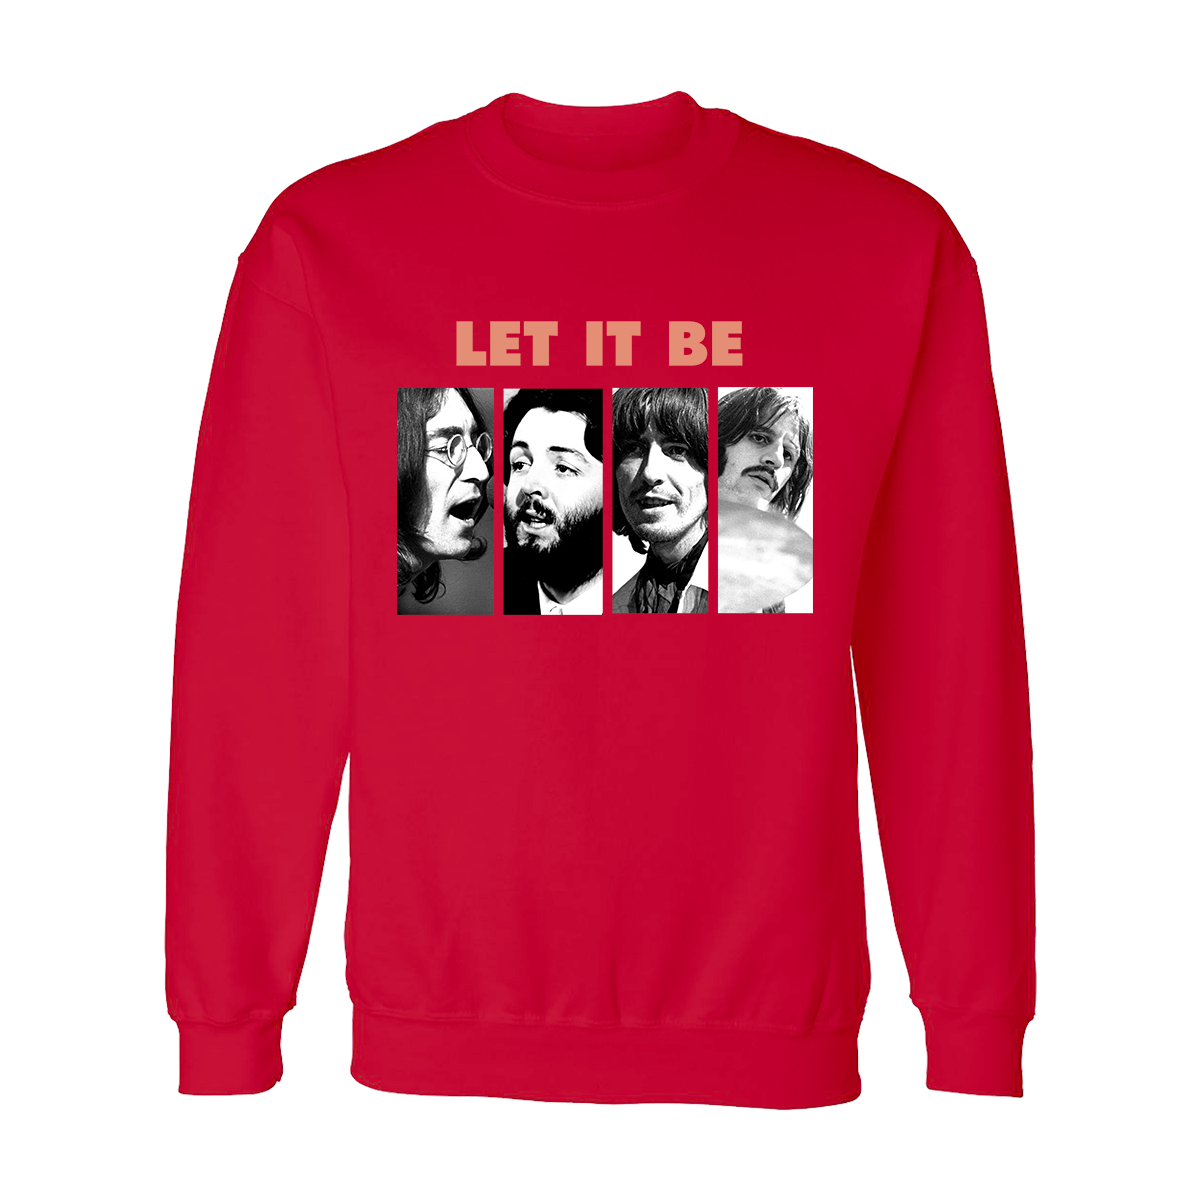 Let It Be Photo Red Crewneck